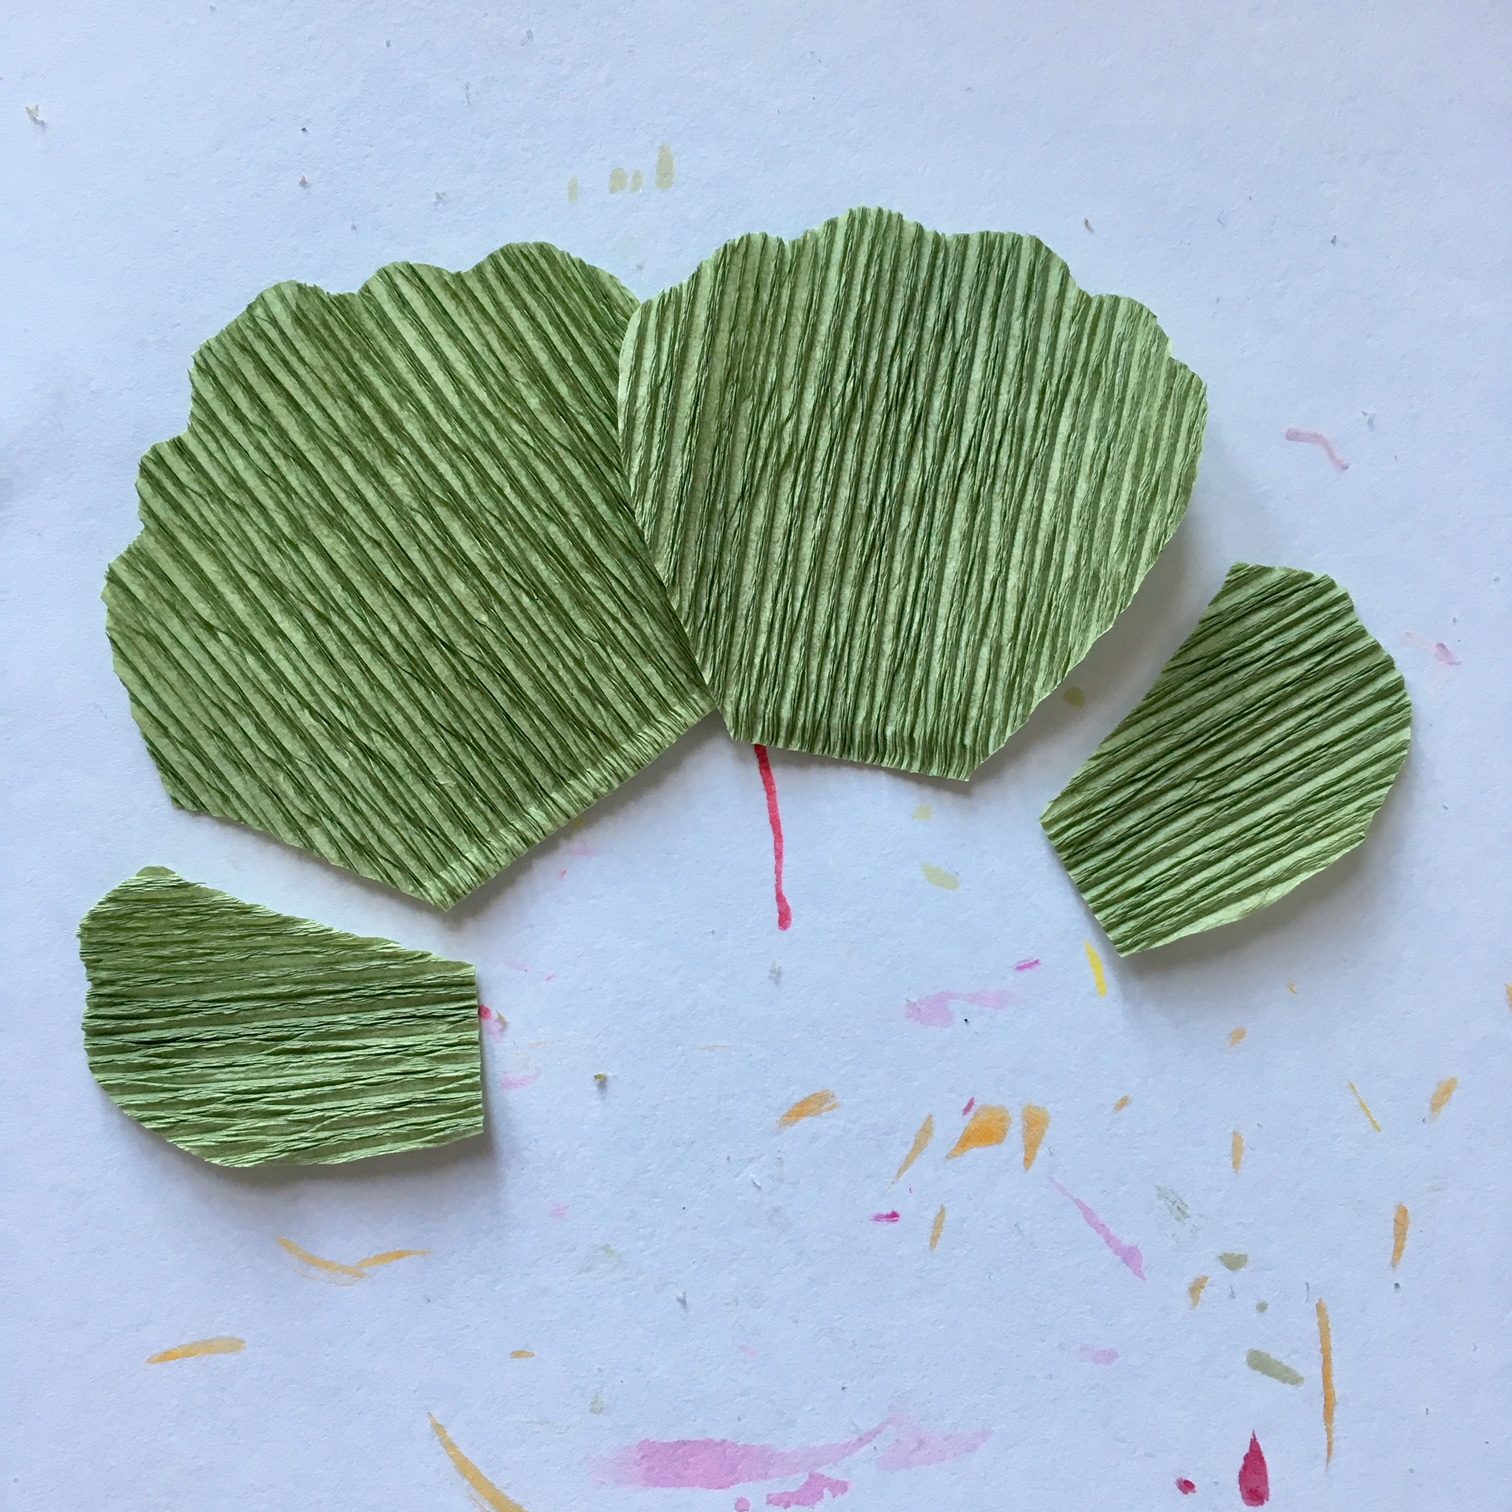 making crepe paper pelargonium leaves, by gluing together 3 paper shapes